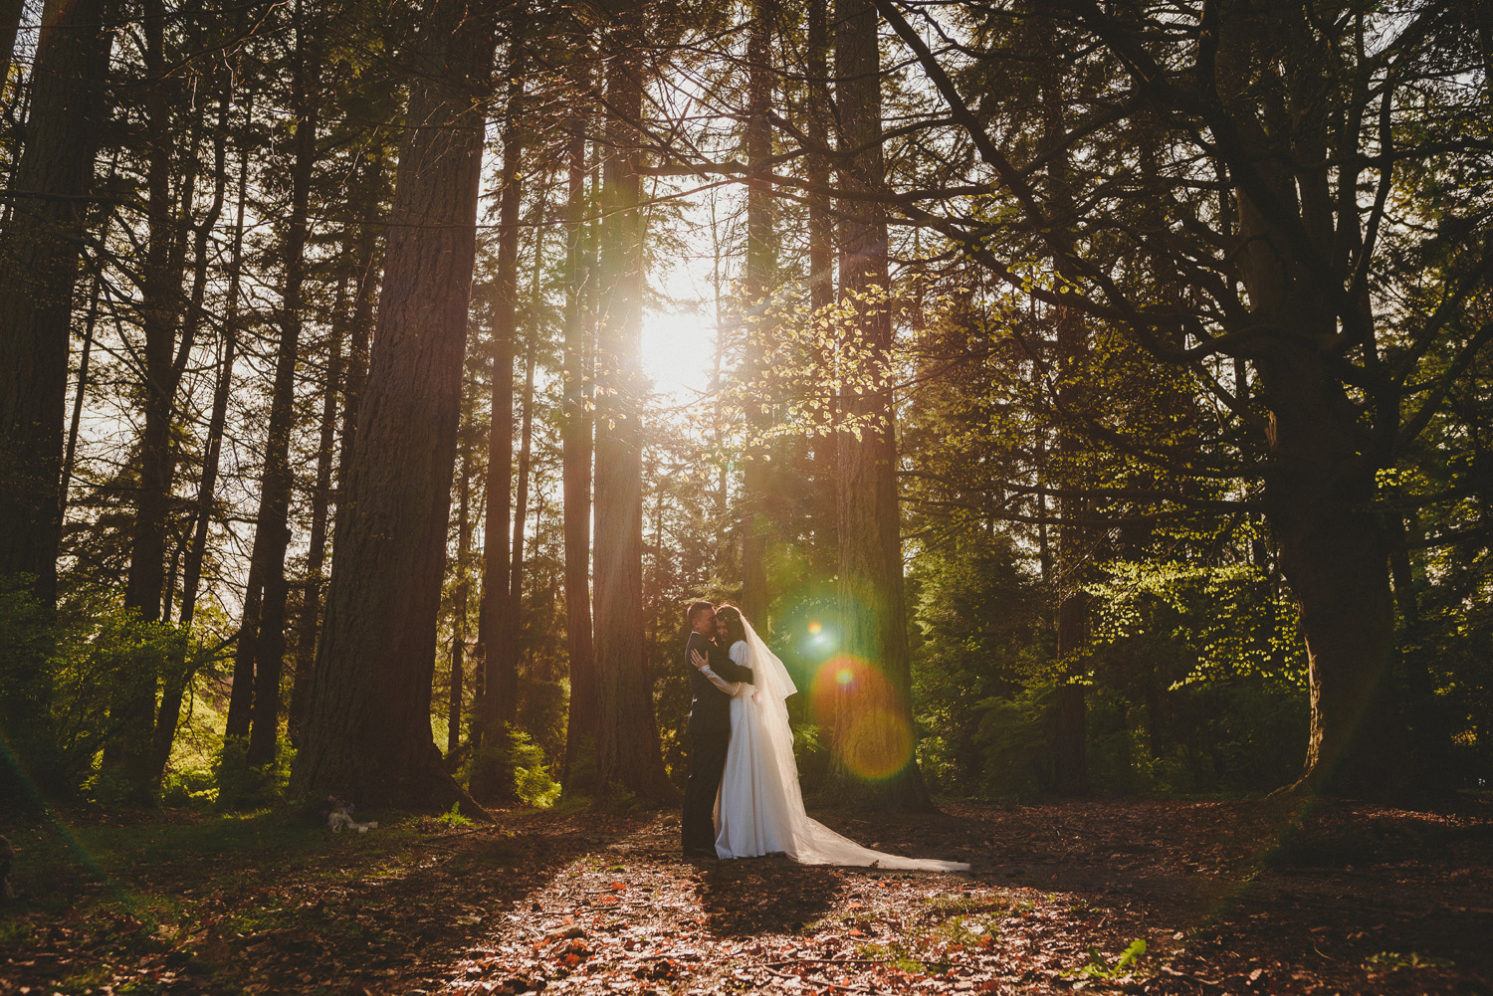 sun flare through the trees on a bride & groom embracing in the forest